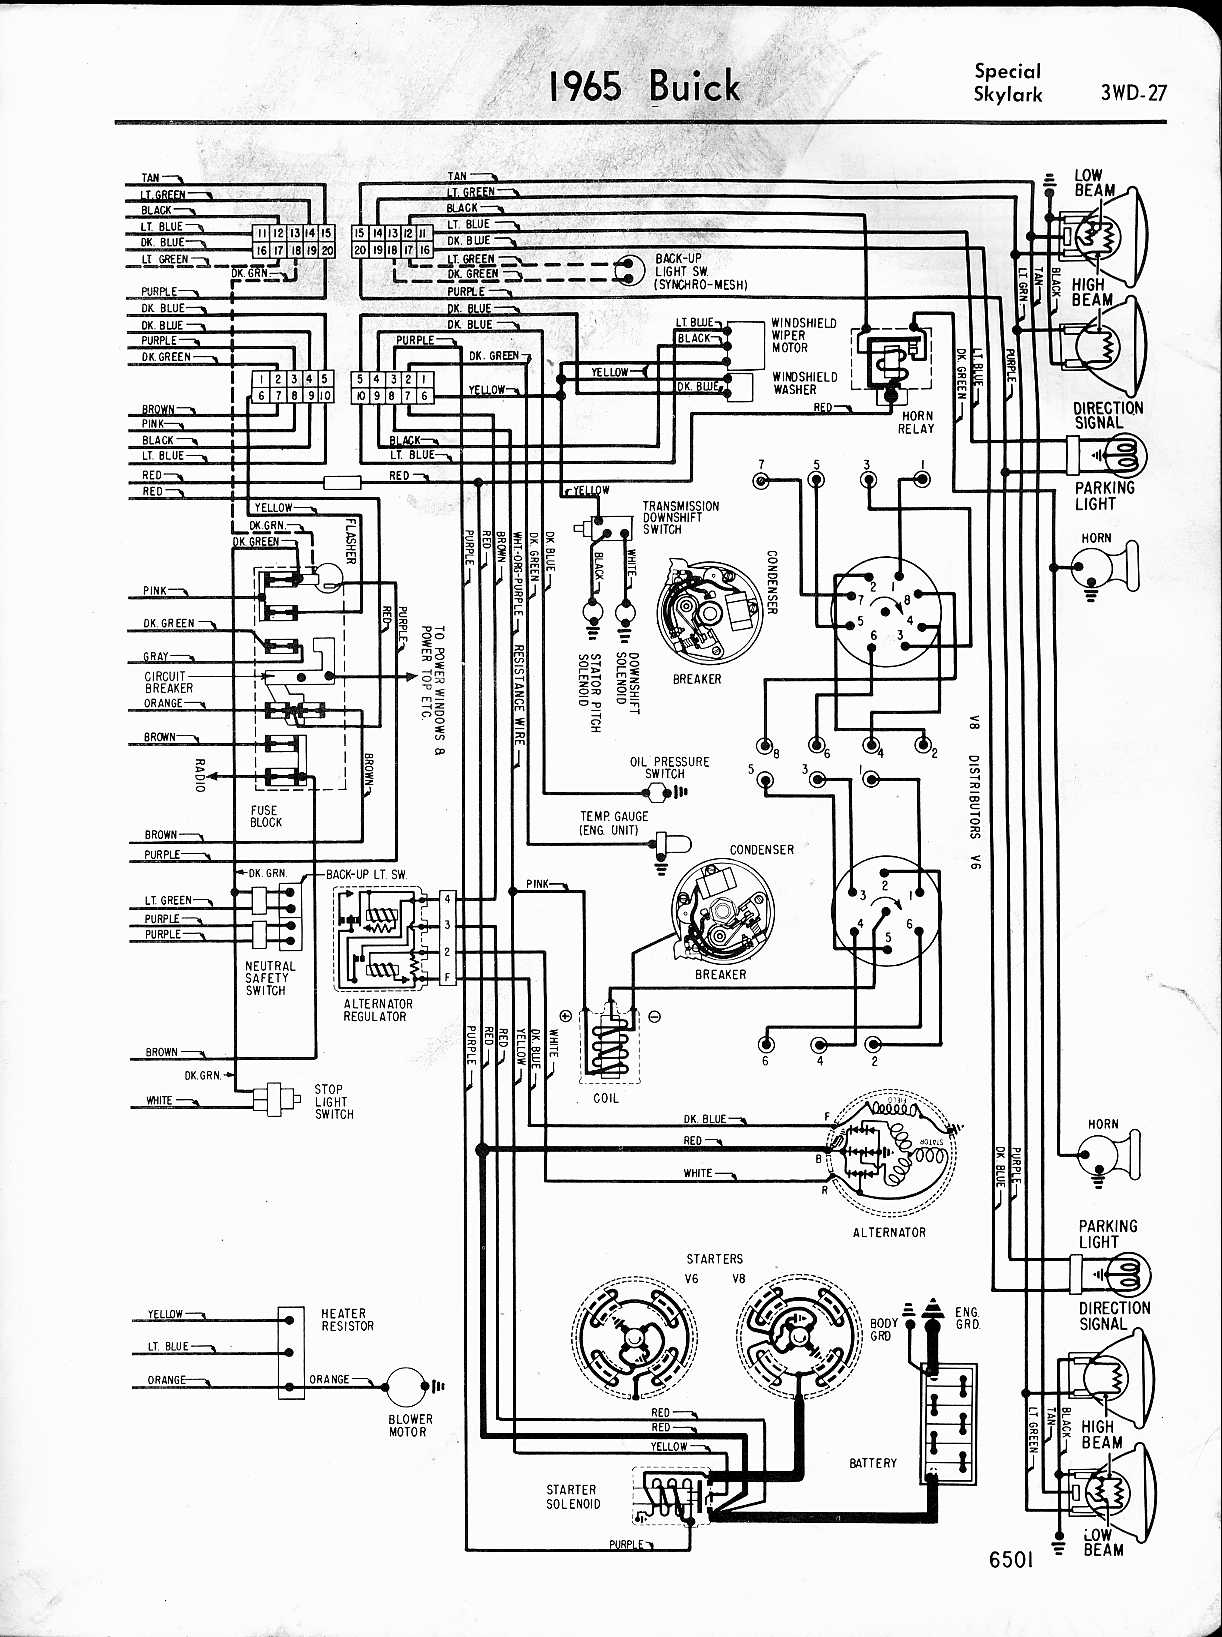 [SCHEMATICS_49CH]  1966 Buick Skylark Wiring Diagram Diagram Base Website Wiring Diagram -  BATVENNDIAGRAM.FONDAZIONEDONNAREGINA.IT | 1966 Buick Special Wiring Diagram |  | Diagram Base Website Full Edition - fondazionedonnaregina.it